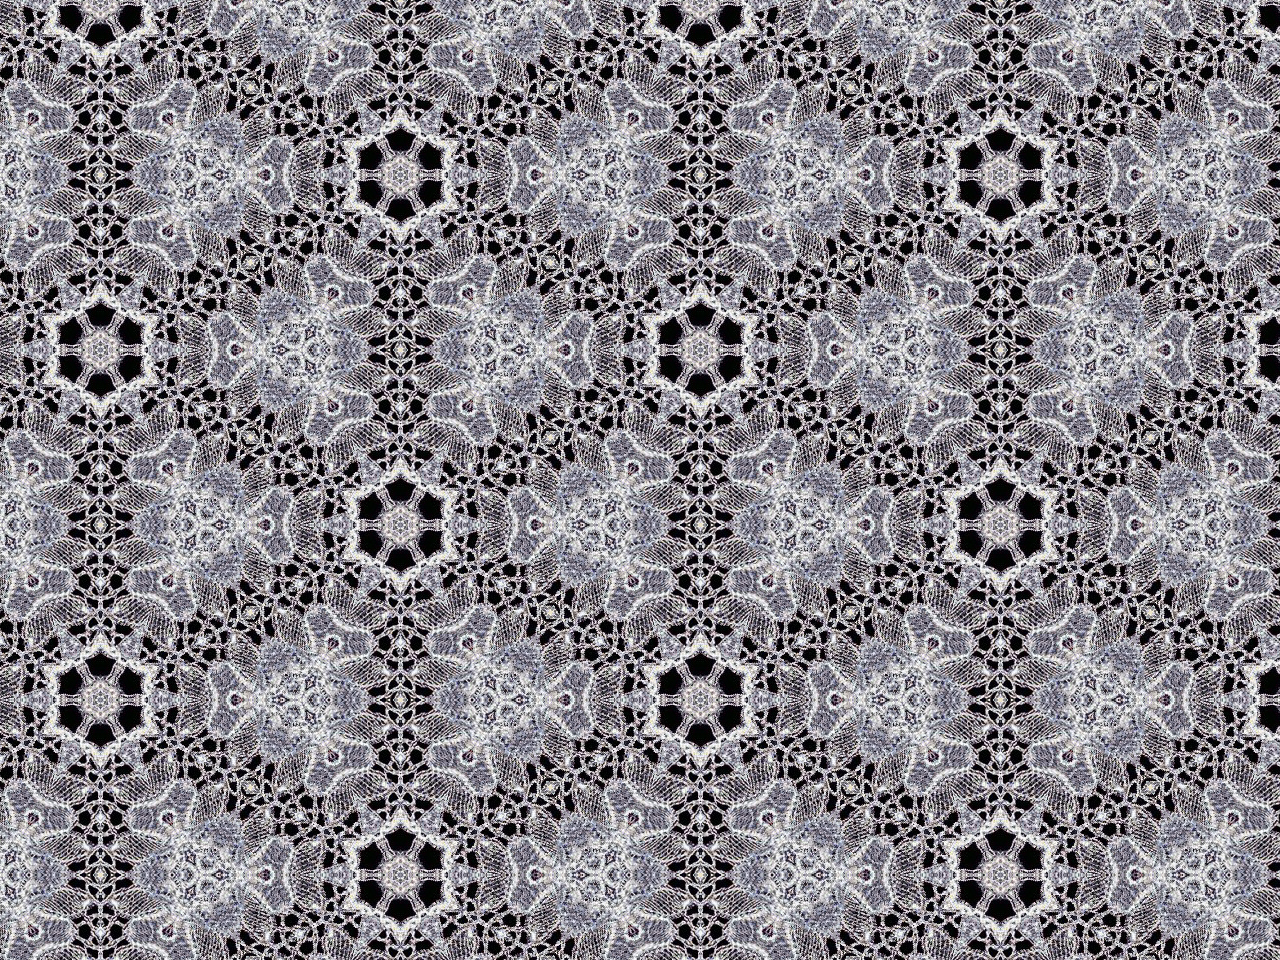 lace background images artbyjean images of lace silver white lace threads over 2818